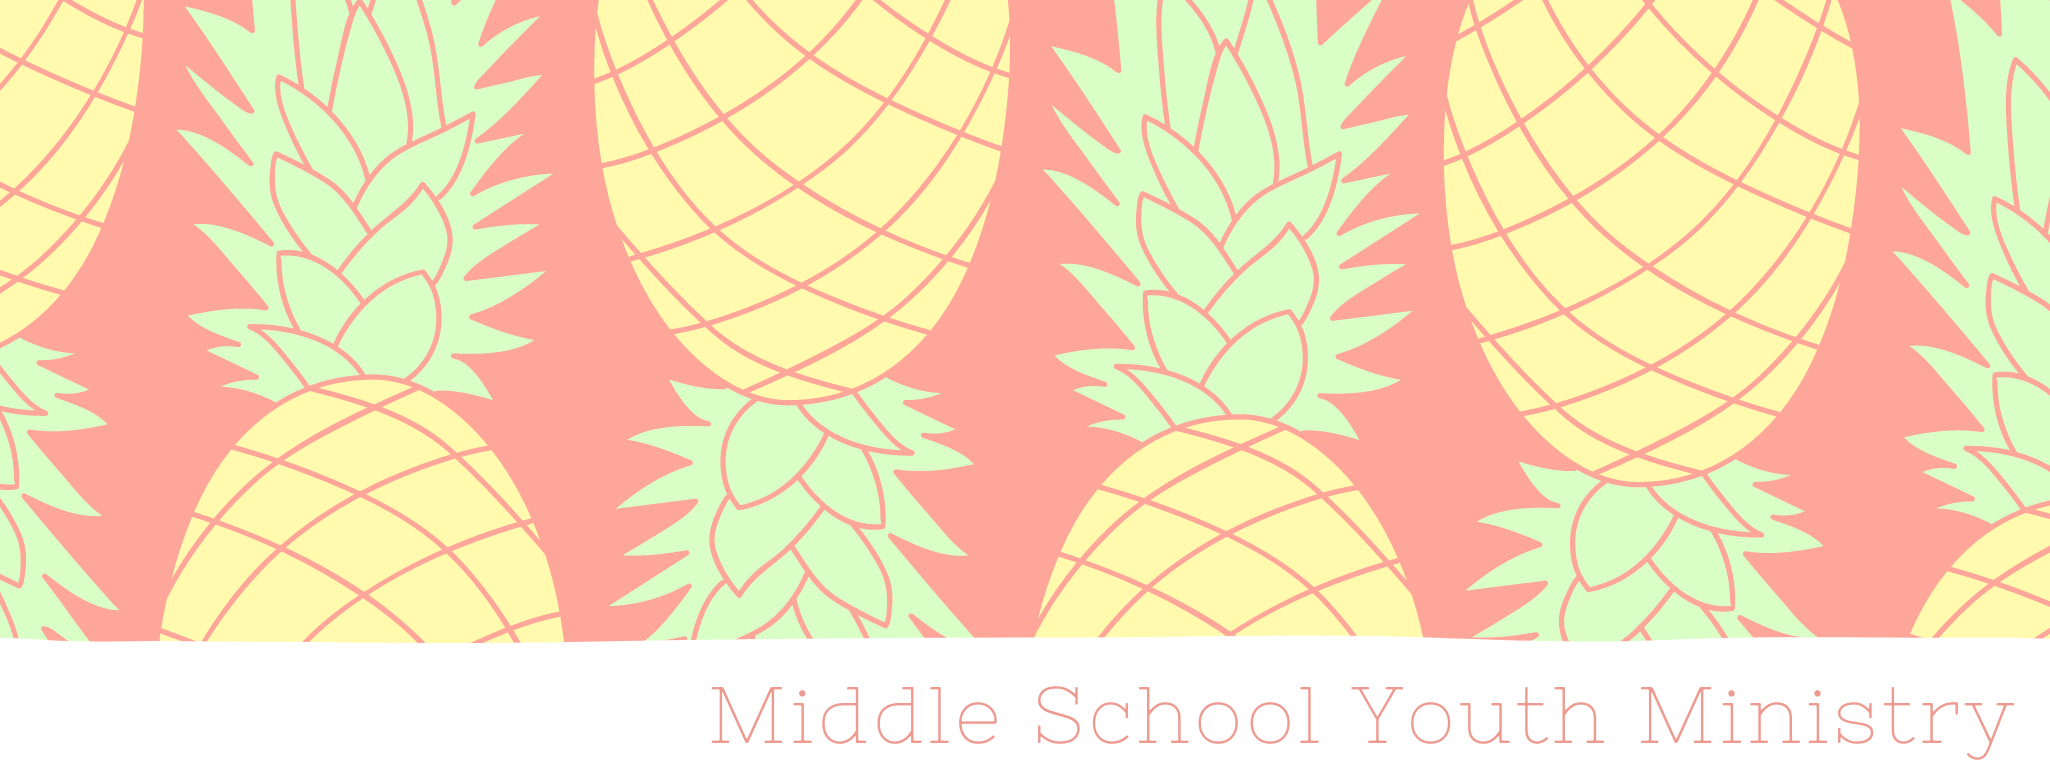 Middle school youth ministry spring button